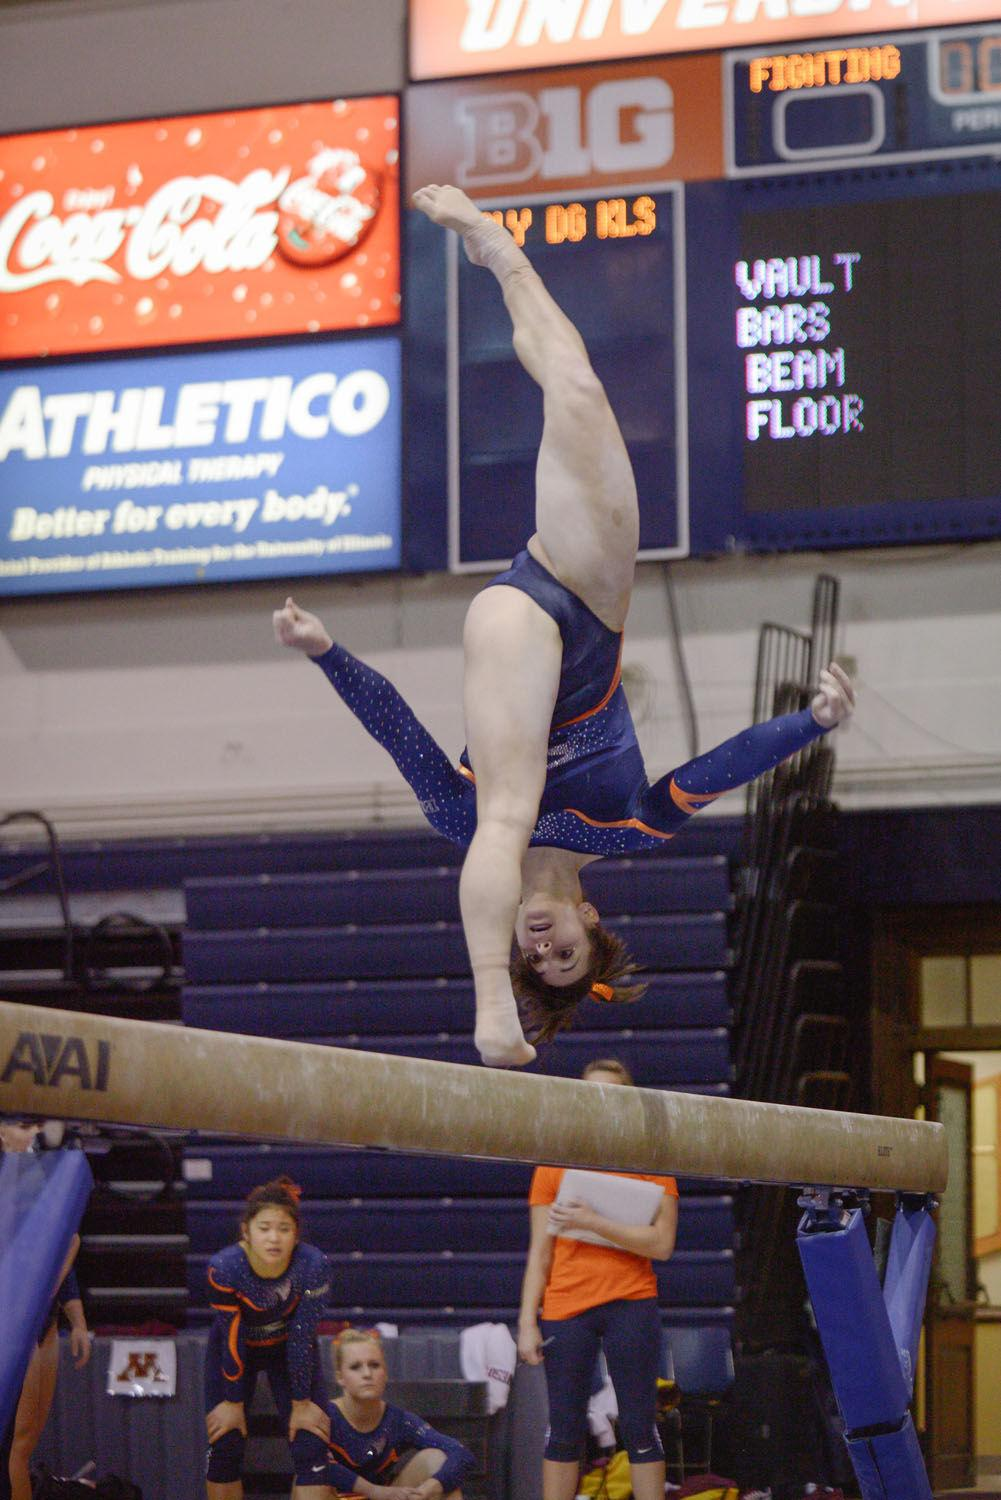 Illinois' Giana O'Connor performs a routine on the balance beam during the meet against Minnesota at Huff Hall on Saturday, February 7, 2015. The Illini won 195.775-195.375. O'Connor won the bars event title on Saturday with a score of 9.900.